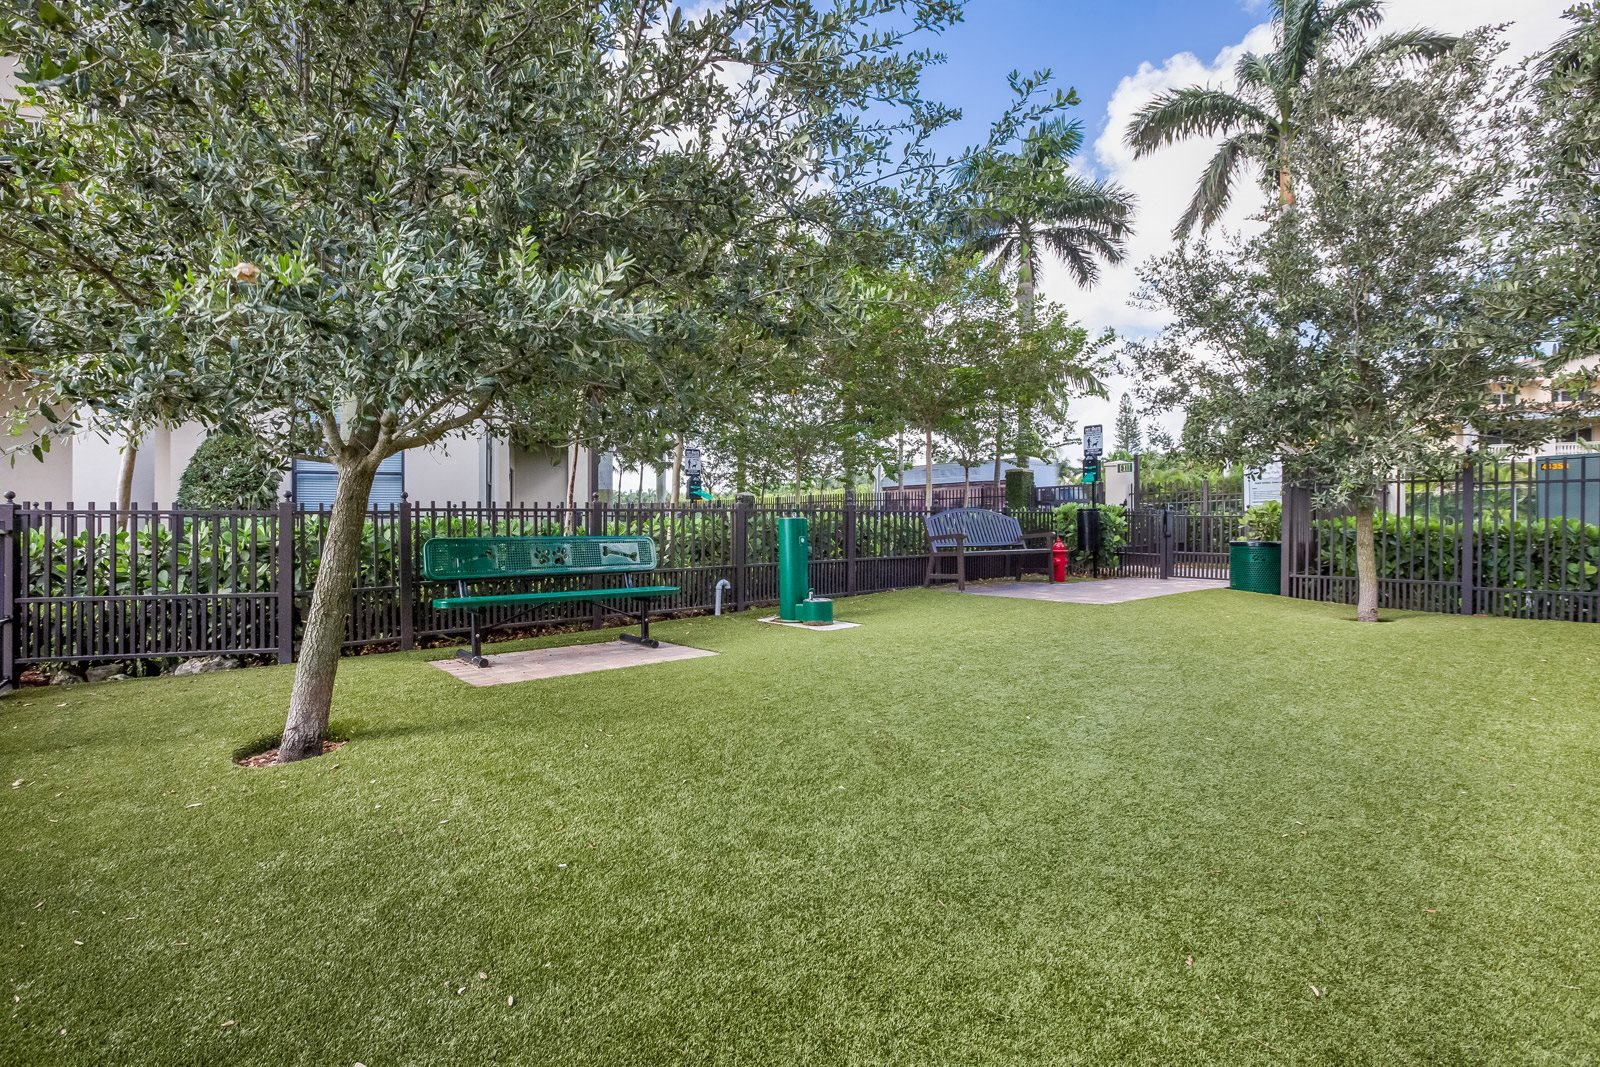 Pet-Friendly Apartments with Bark Park at Windsor at Doral, Doral, 33178